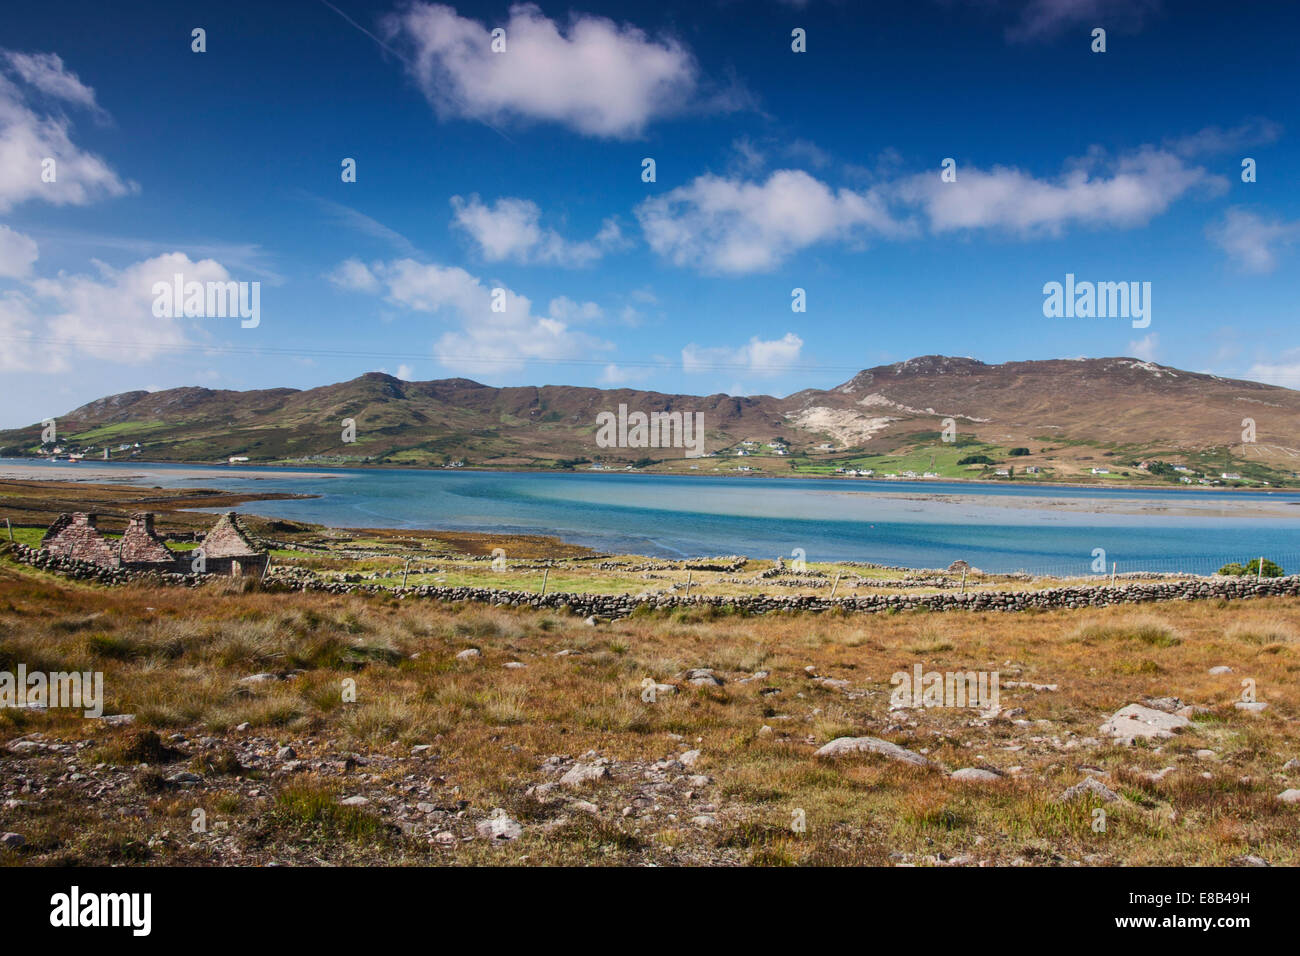 Glassillaun, Mayo, Ireland, 26th September 2014, Achill Island lifeboat station as seen from Glassillaun - Stock Image